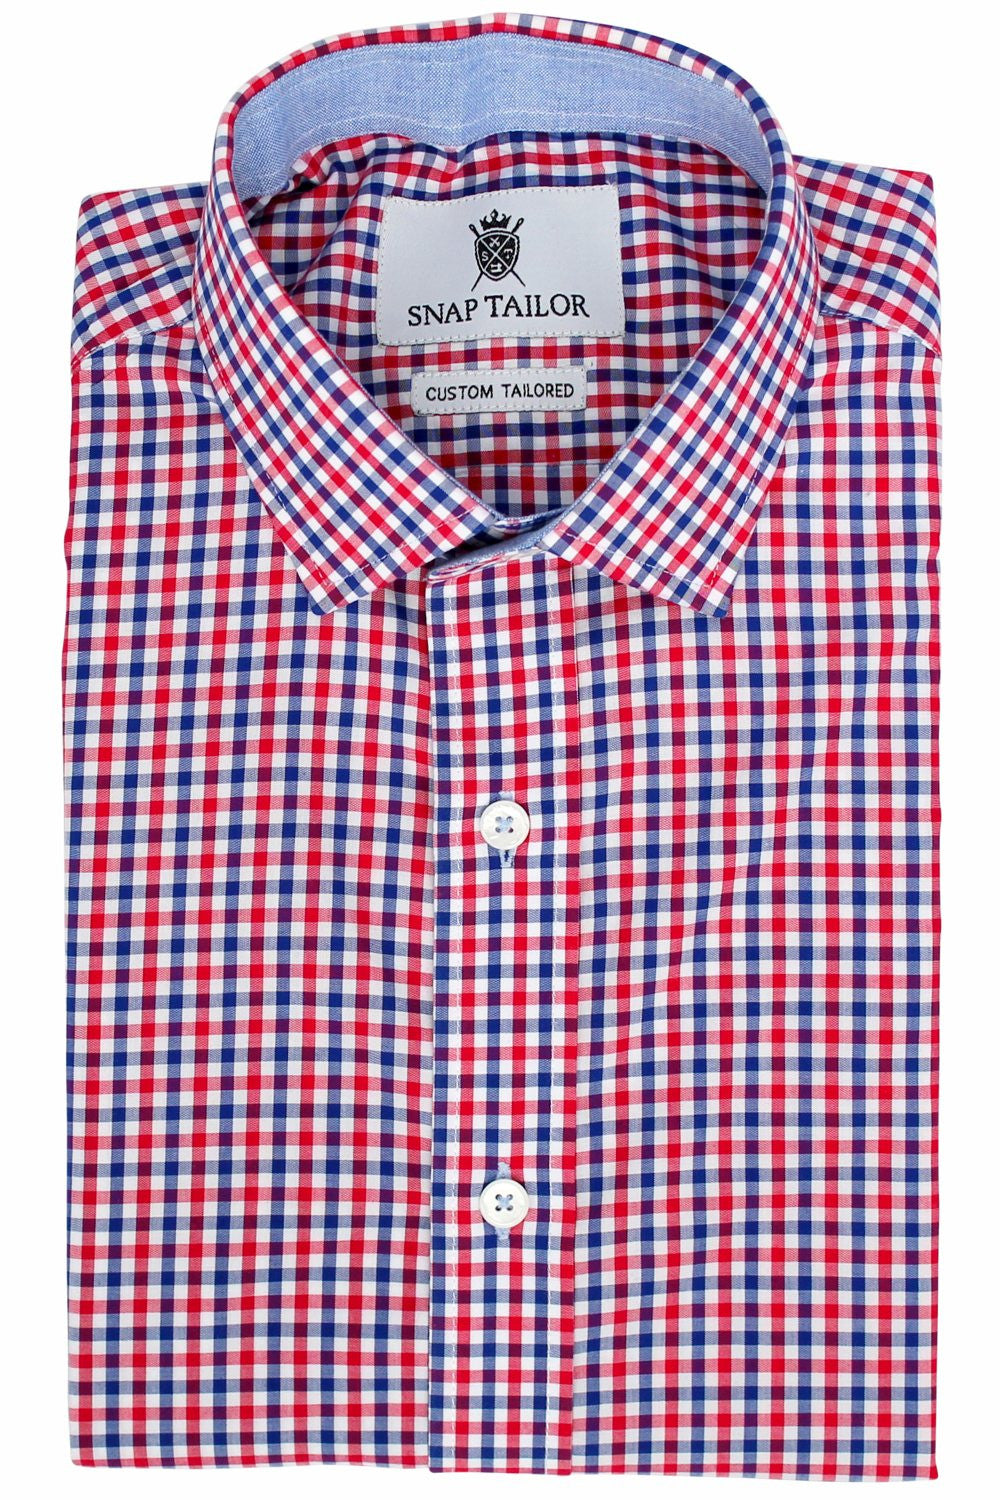 Photo of the Multicolor Gingham Casual Shirt in Red / Navy Blue